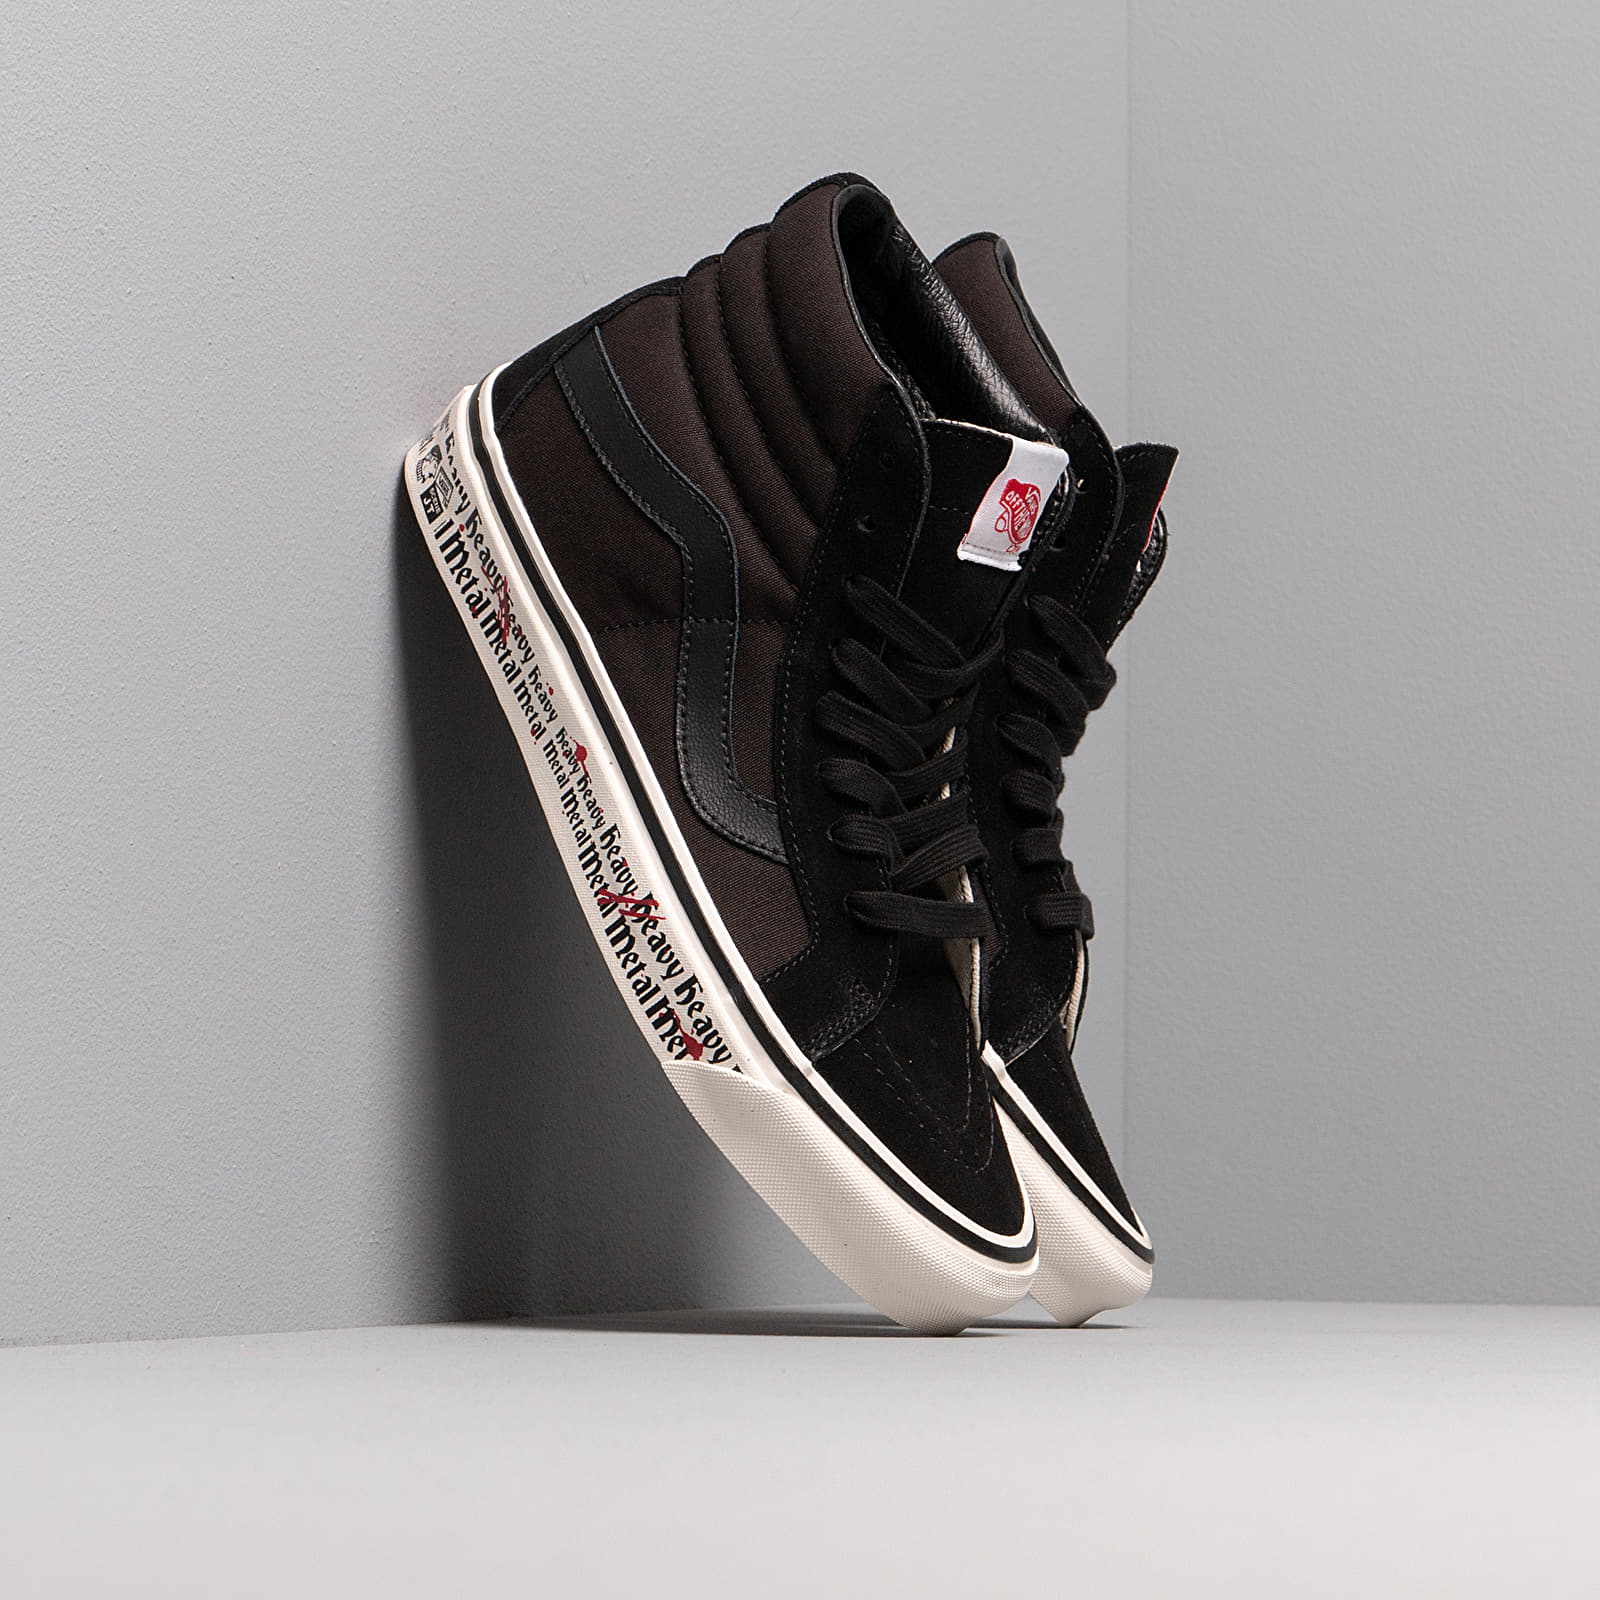 Buty męskie Vans Sk8-Hi 38 Dx Heavy Metal Tape/ Og Black